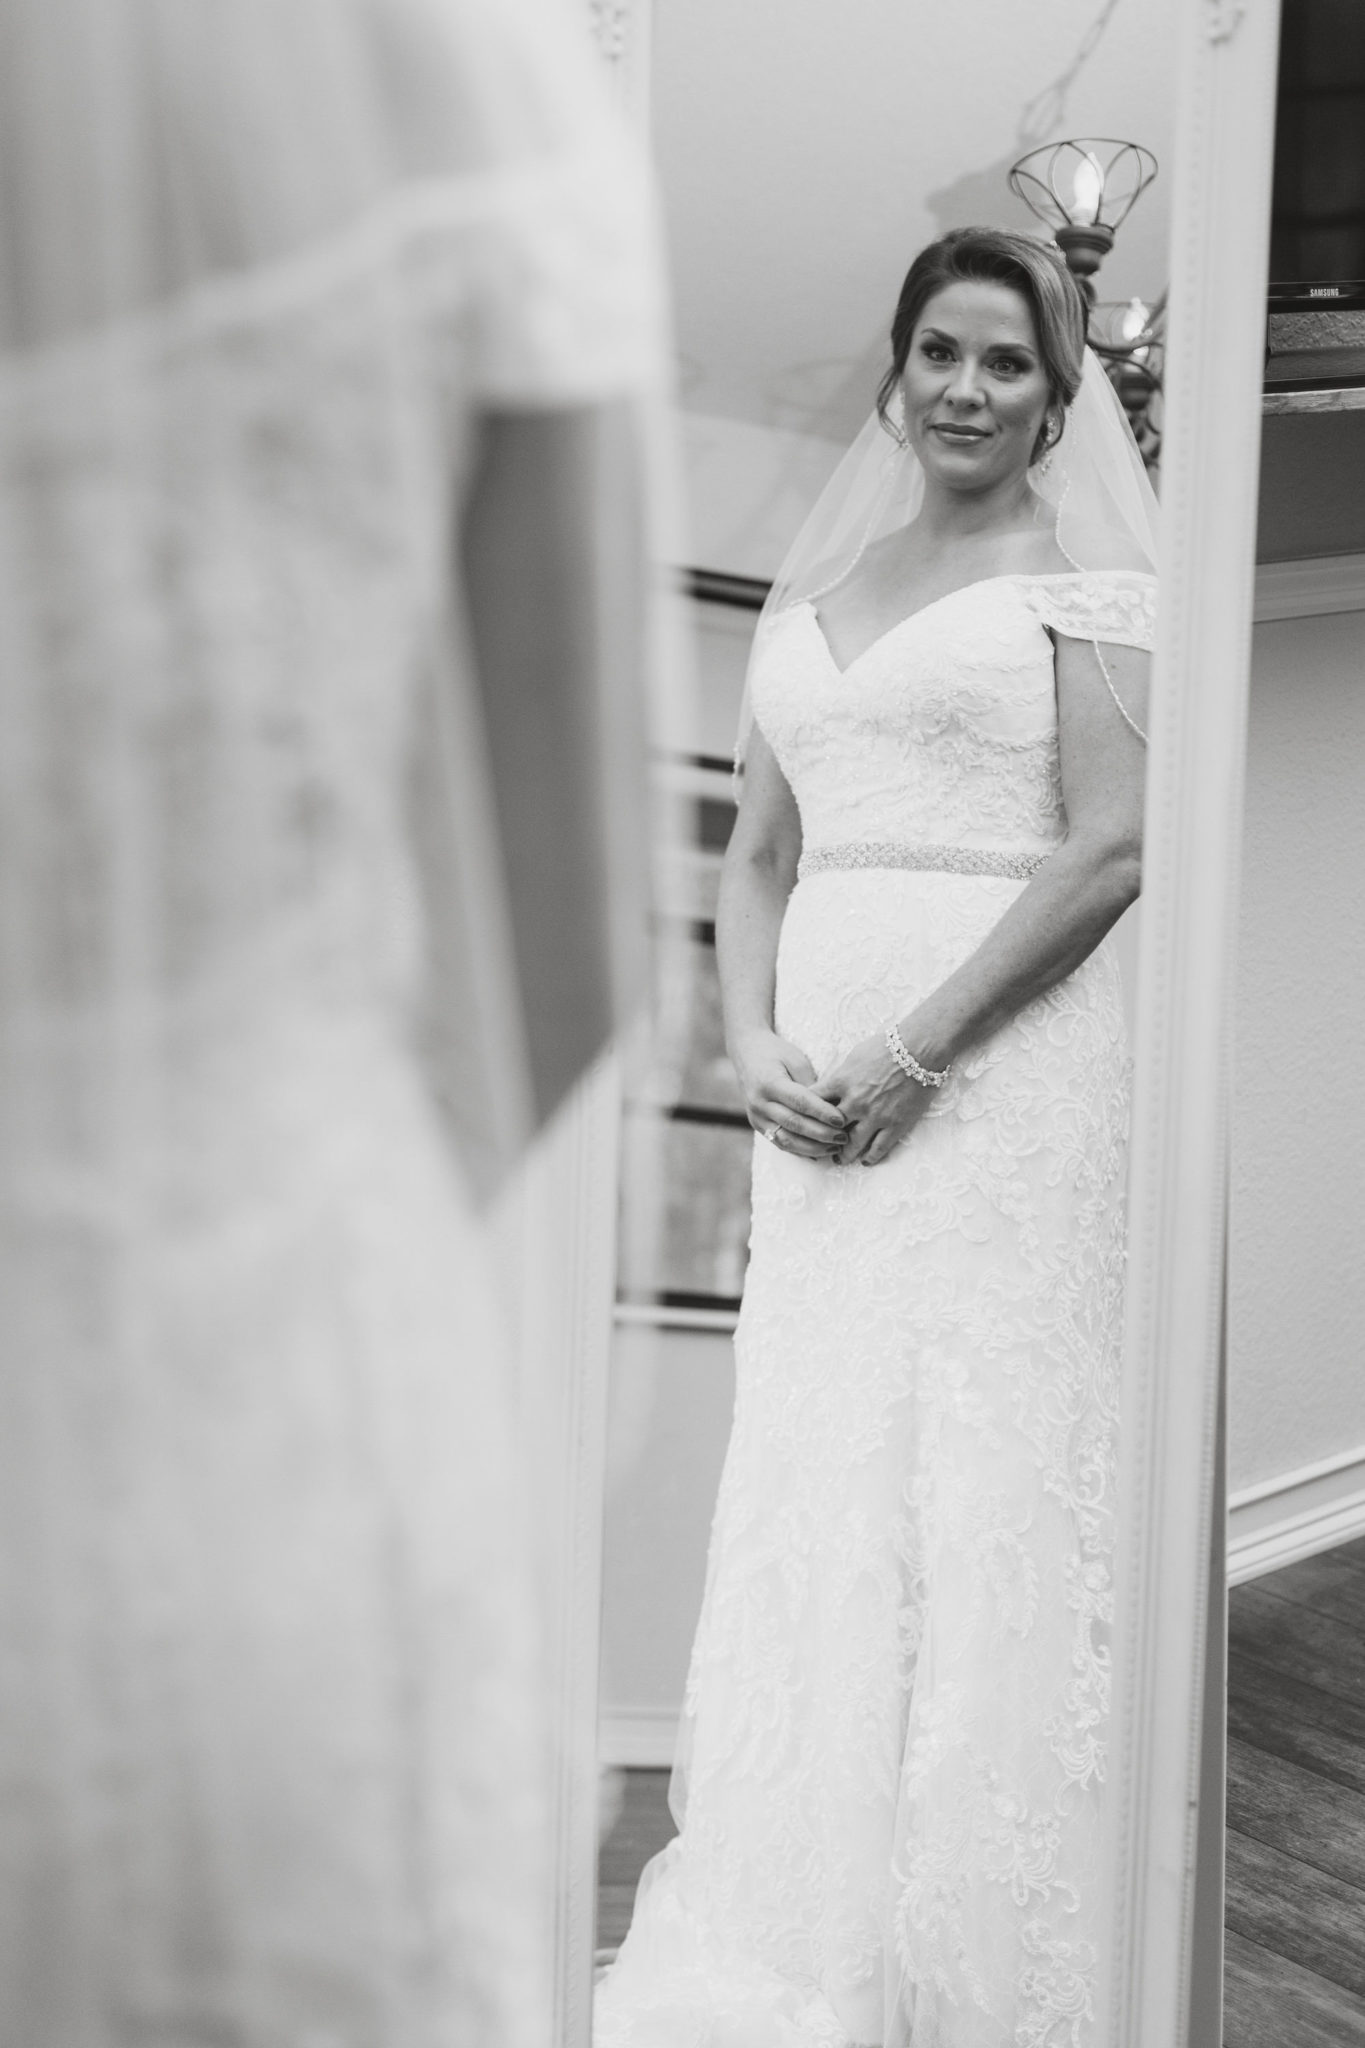 Bride looking at her reflection in the mirror.